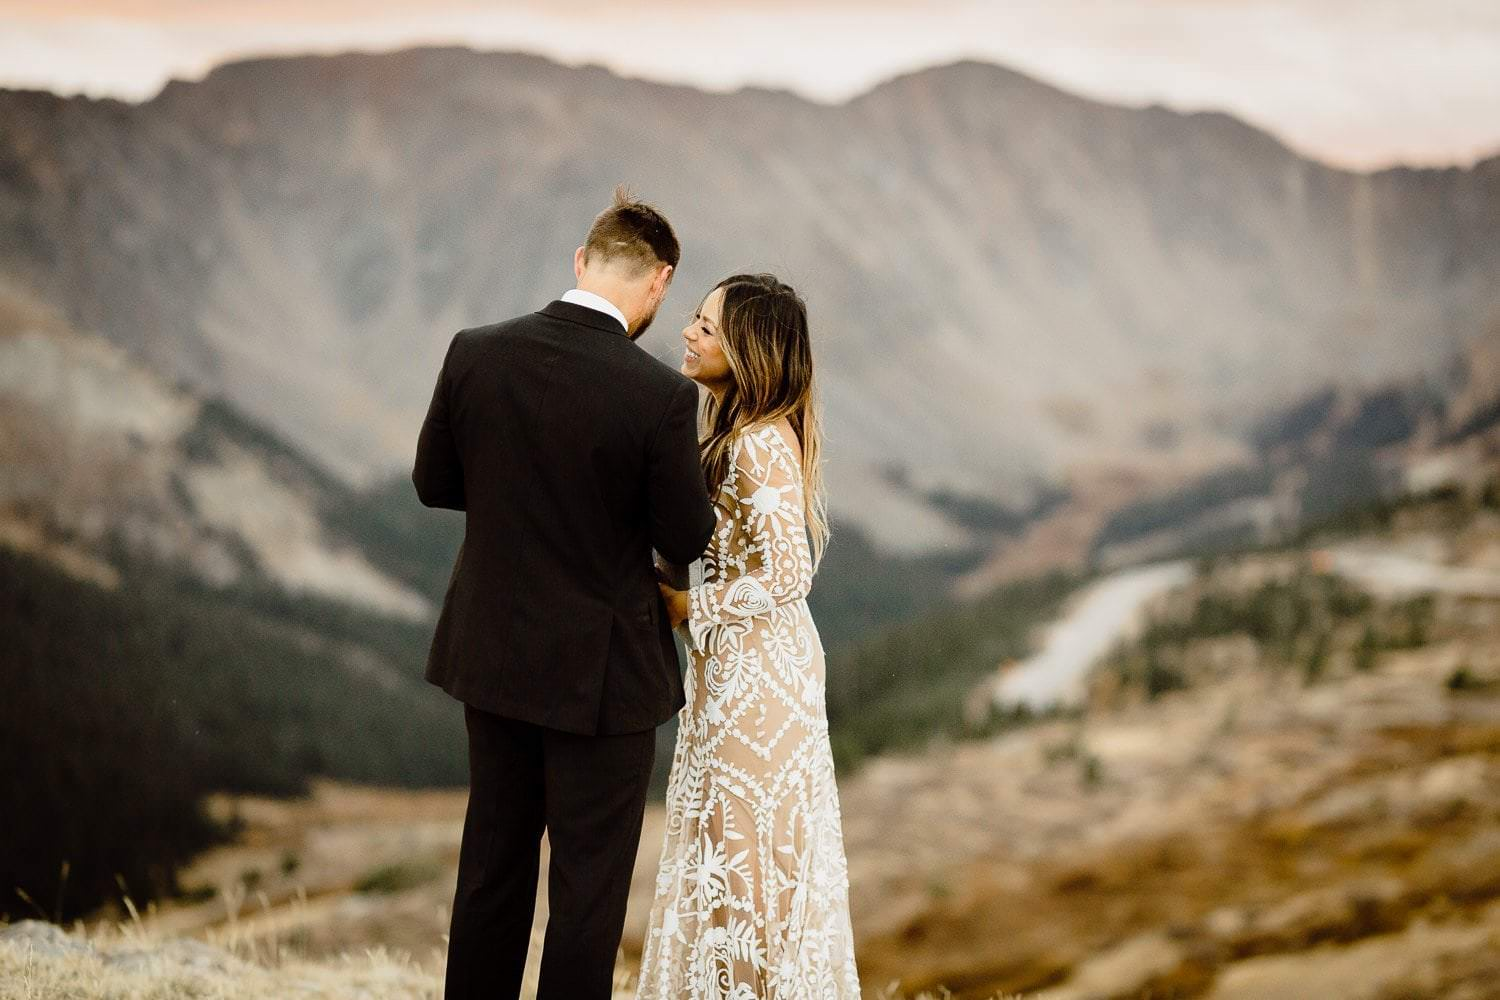 JOHN'S +JANEENA ADVENTUROUS BRECKENRIDGE ELOPEMENT | SUNRISE FIRST LOOK AT LOVELAND PASS | SUNRISE WEDDING CEREMONY AT LOVELAND PASS | DESTINATION ELOPEMENT PHOTOGRAPHER COLORADO ADVENTURE PHOTOGRAPHY|COLORADO ELOPEMENT PHOTOGRAPHER|DESTINATION ADVENTURE ELOPEMENTS + INTIMATE WEDDINGS FOR MADLY IN LOVE SOULS| ROCKY MOUNTAIN NATIONAL PARK COLORADO ELOPEMENT PHOTOGRAPHER